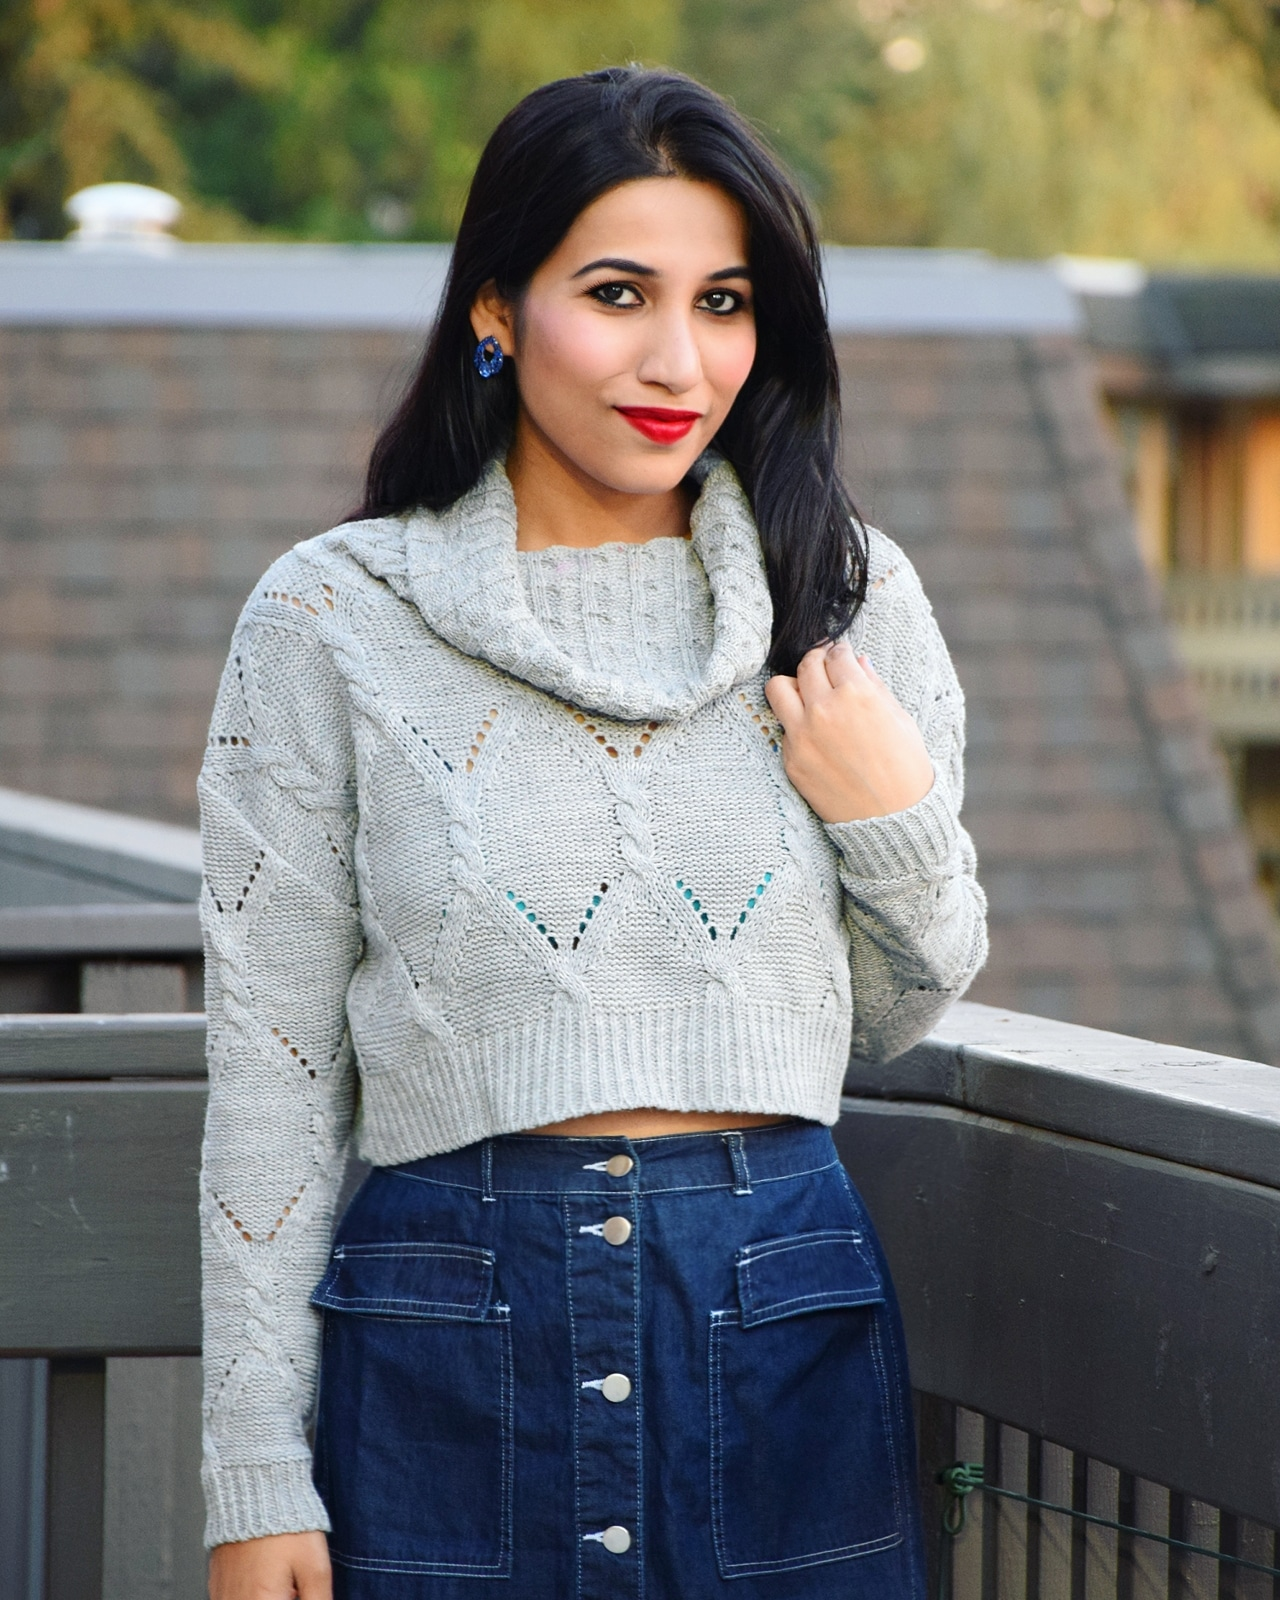 https://femmeluxefinery.co.uk/collections/knit-jumper/products/grey-polo-neck-cable-knit-cropped-jumper-juniper